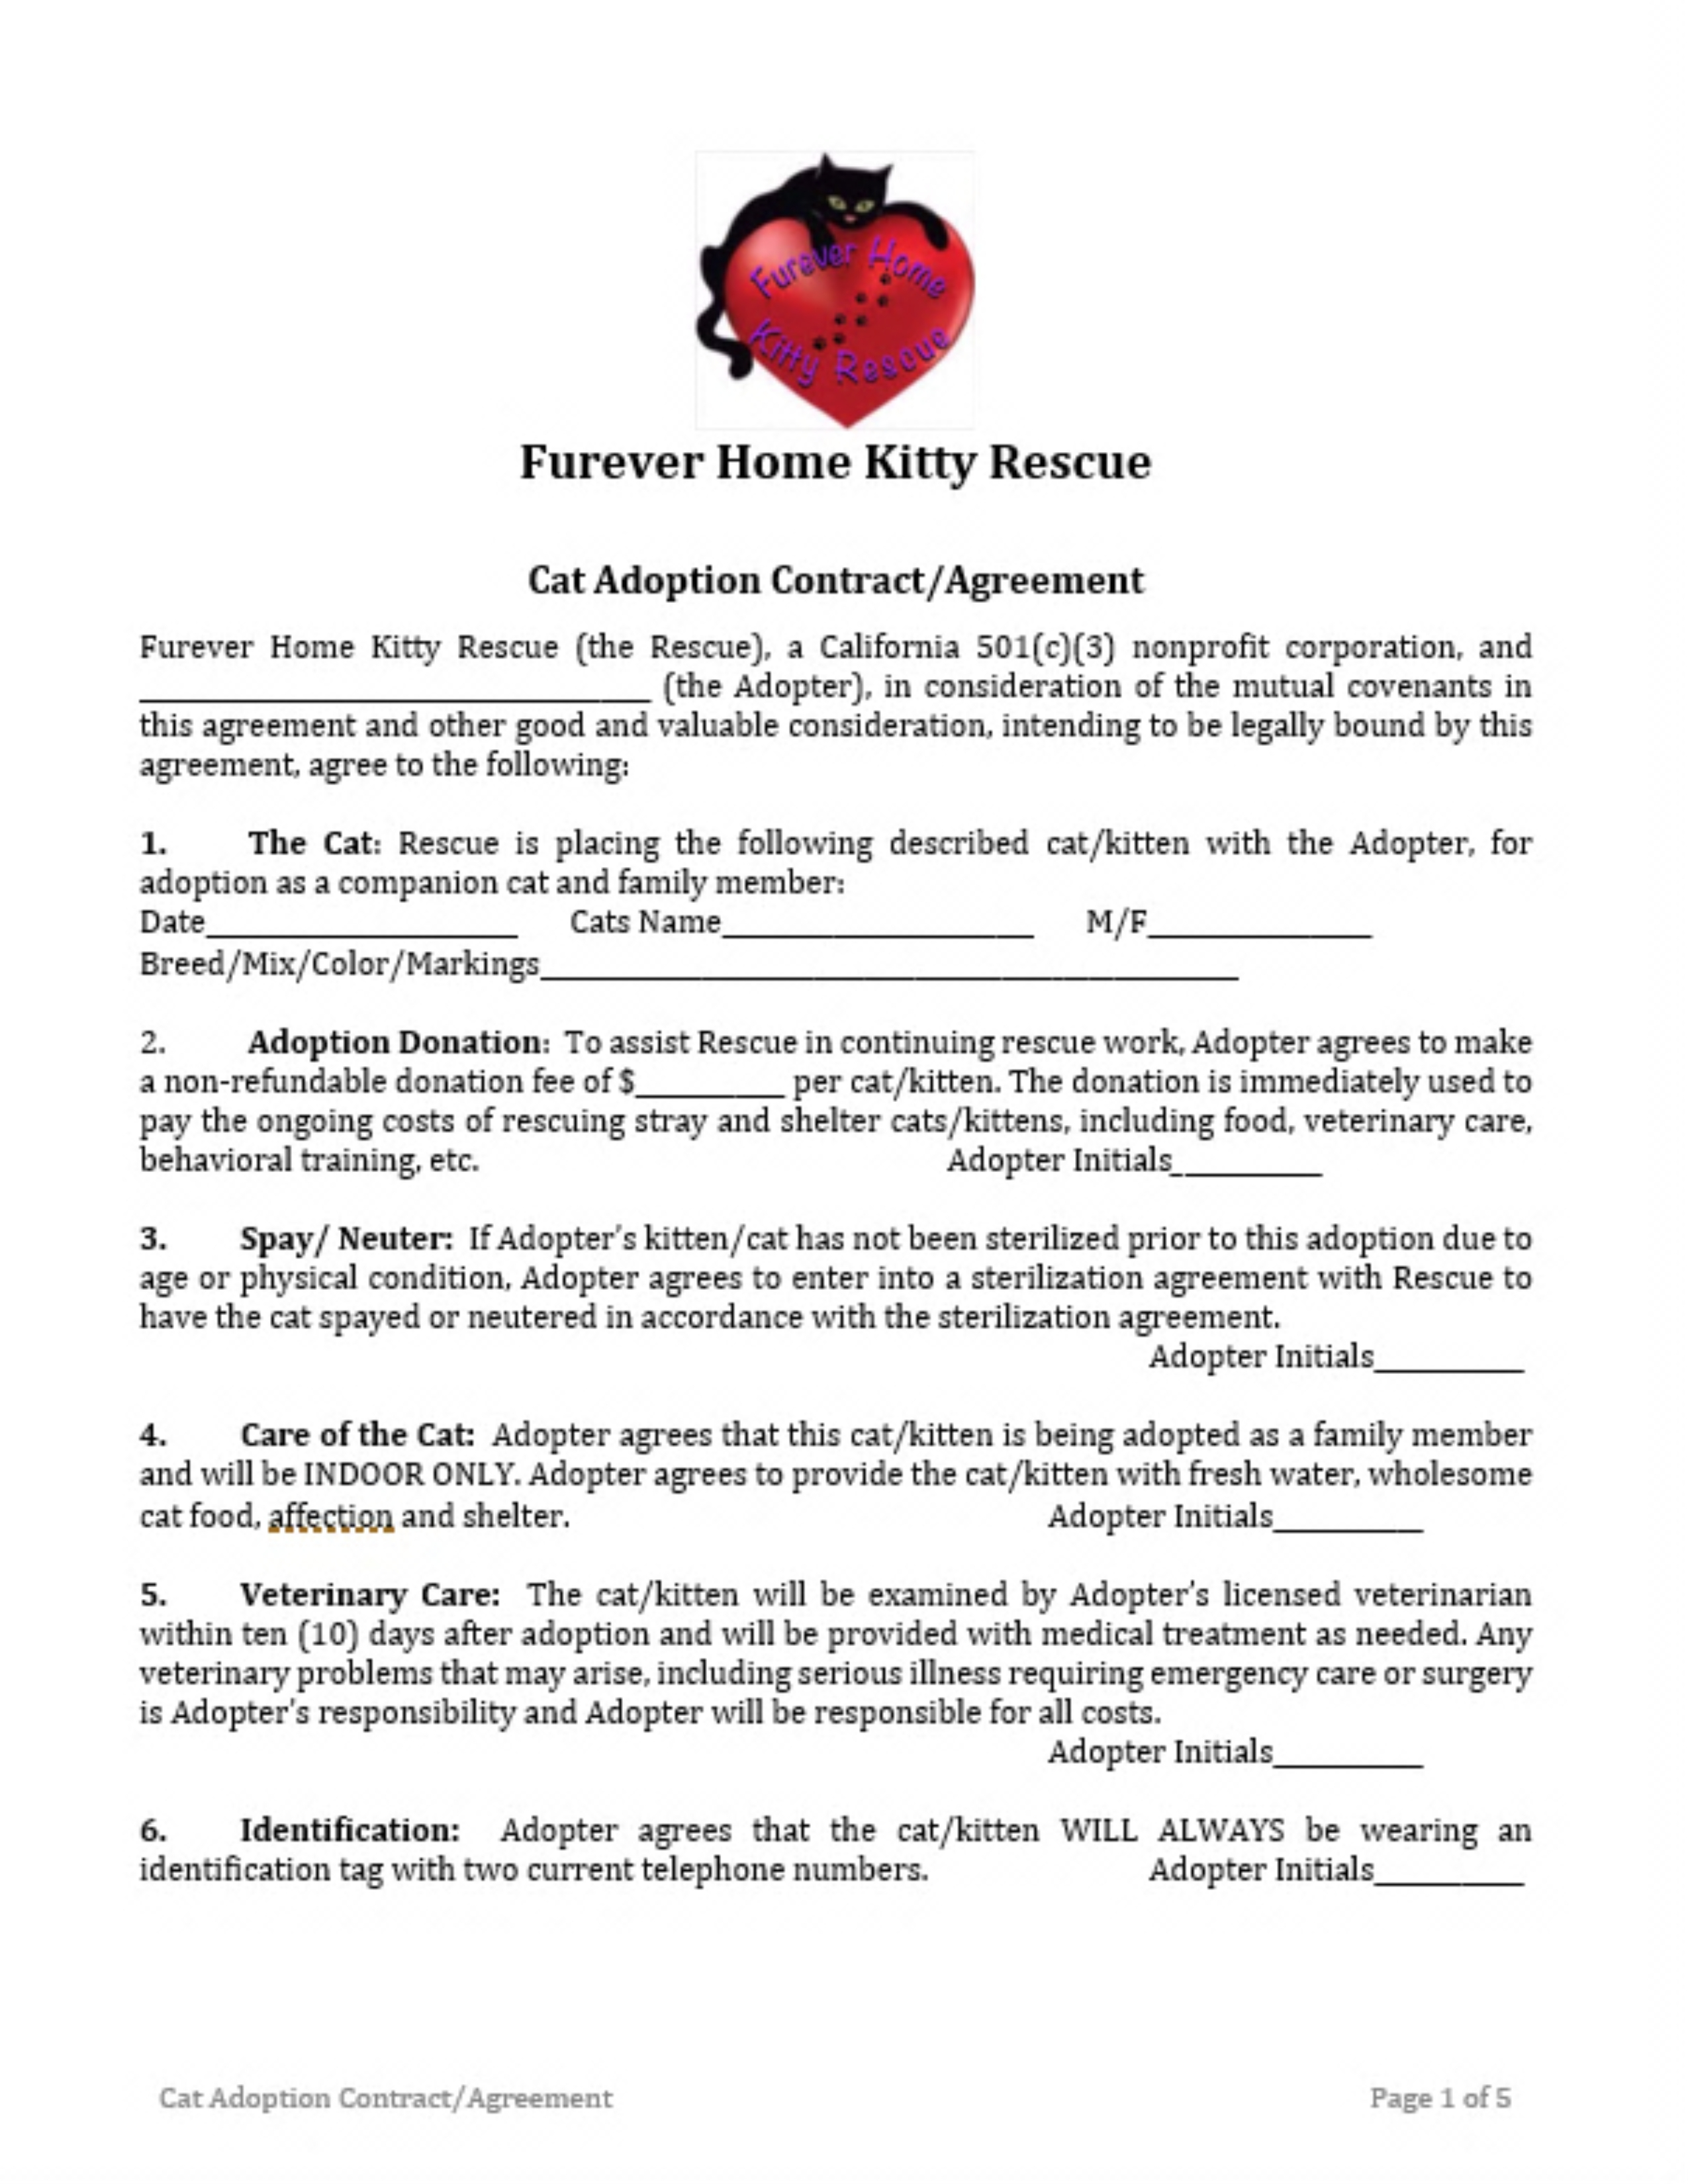 fhkr adoption contract00new